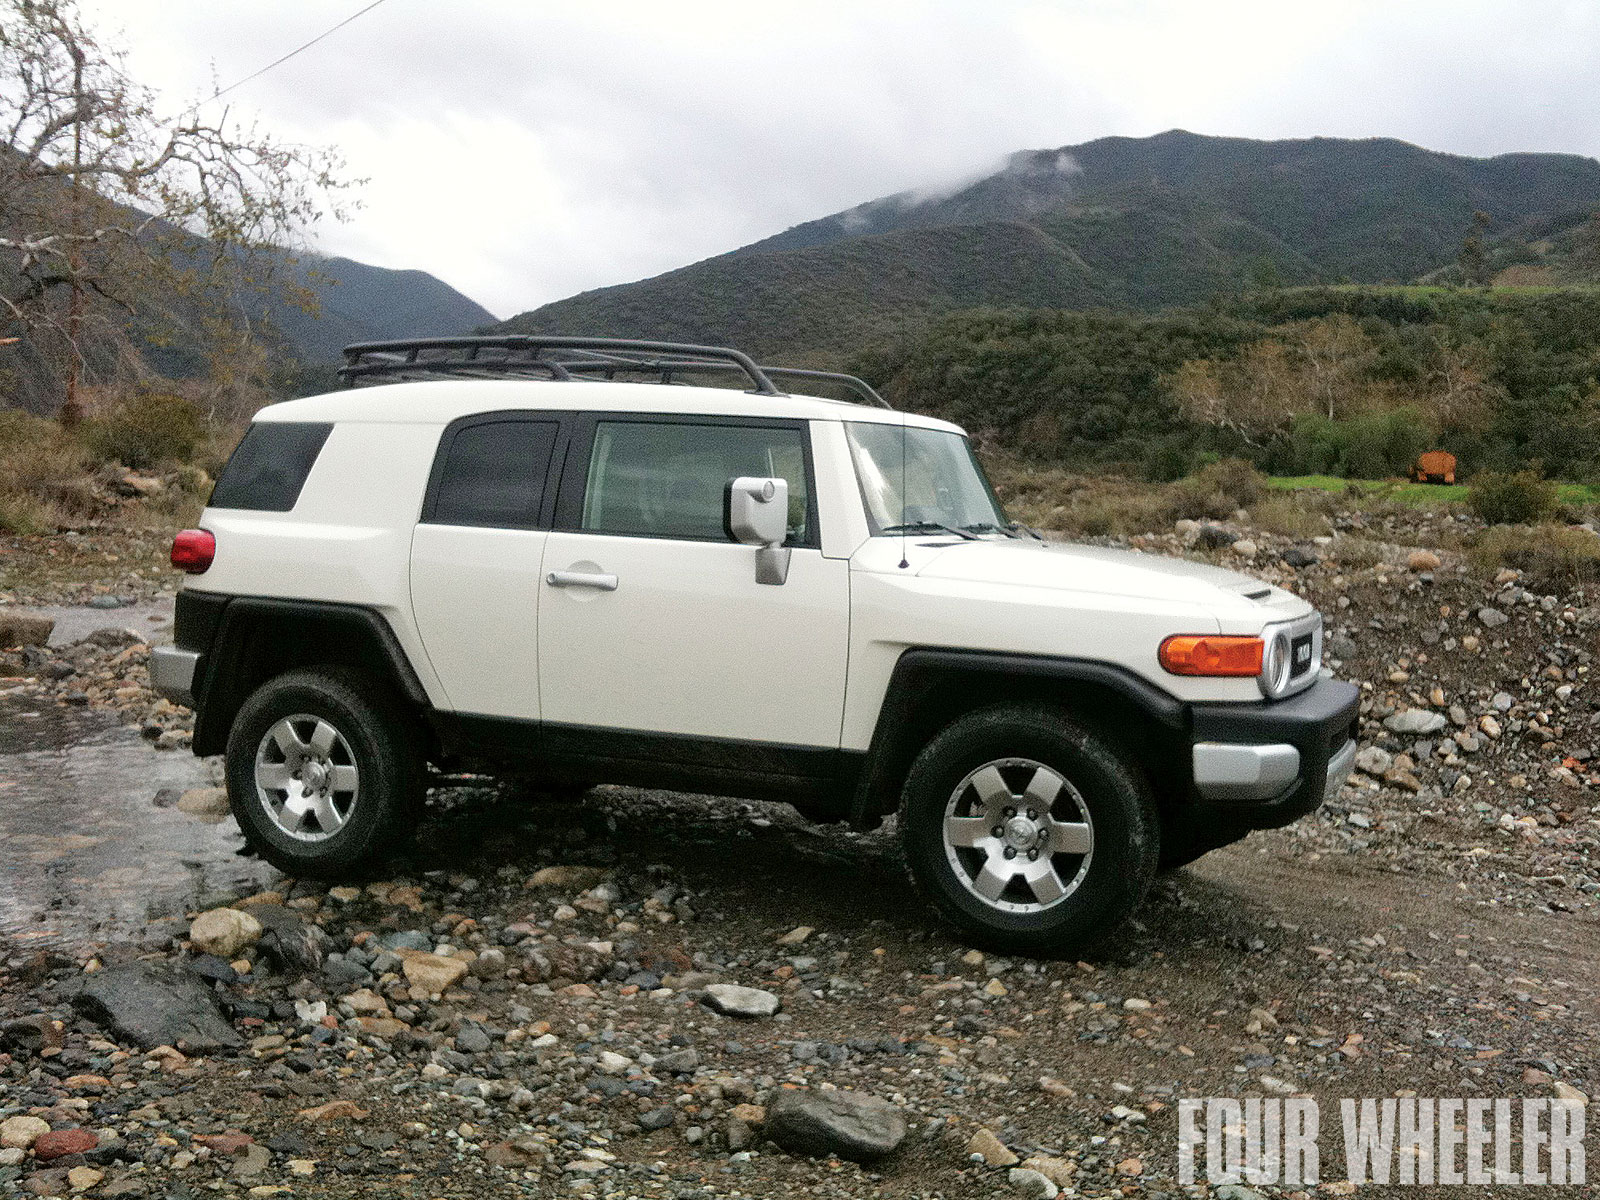 129 1101 23 o+129 1101 icon fj stage 5 suspension+lifted toyota fj cruiser